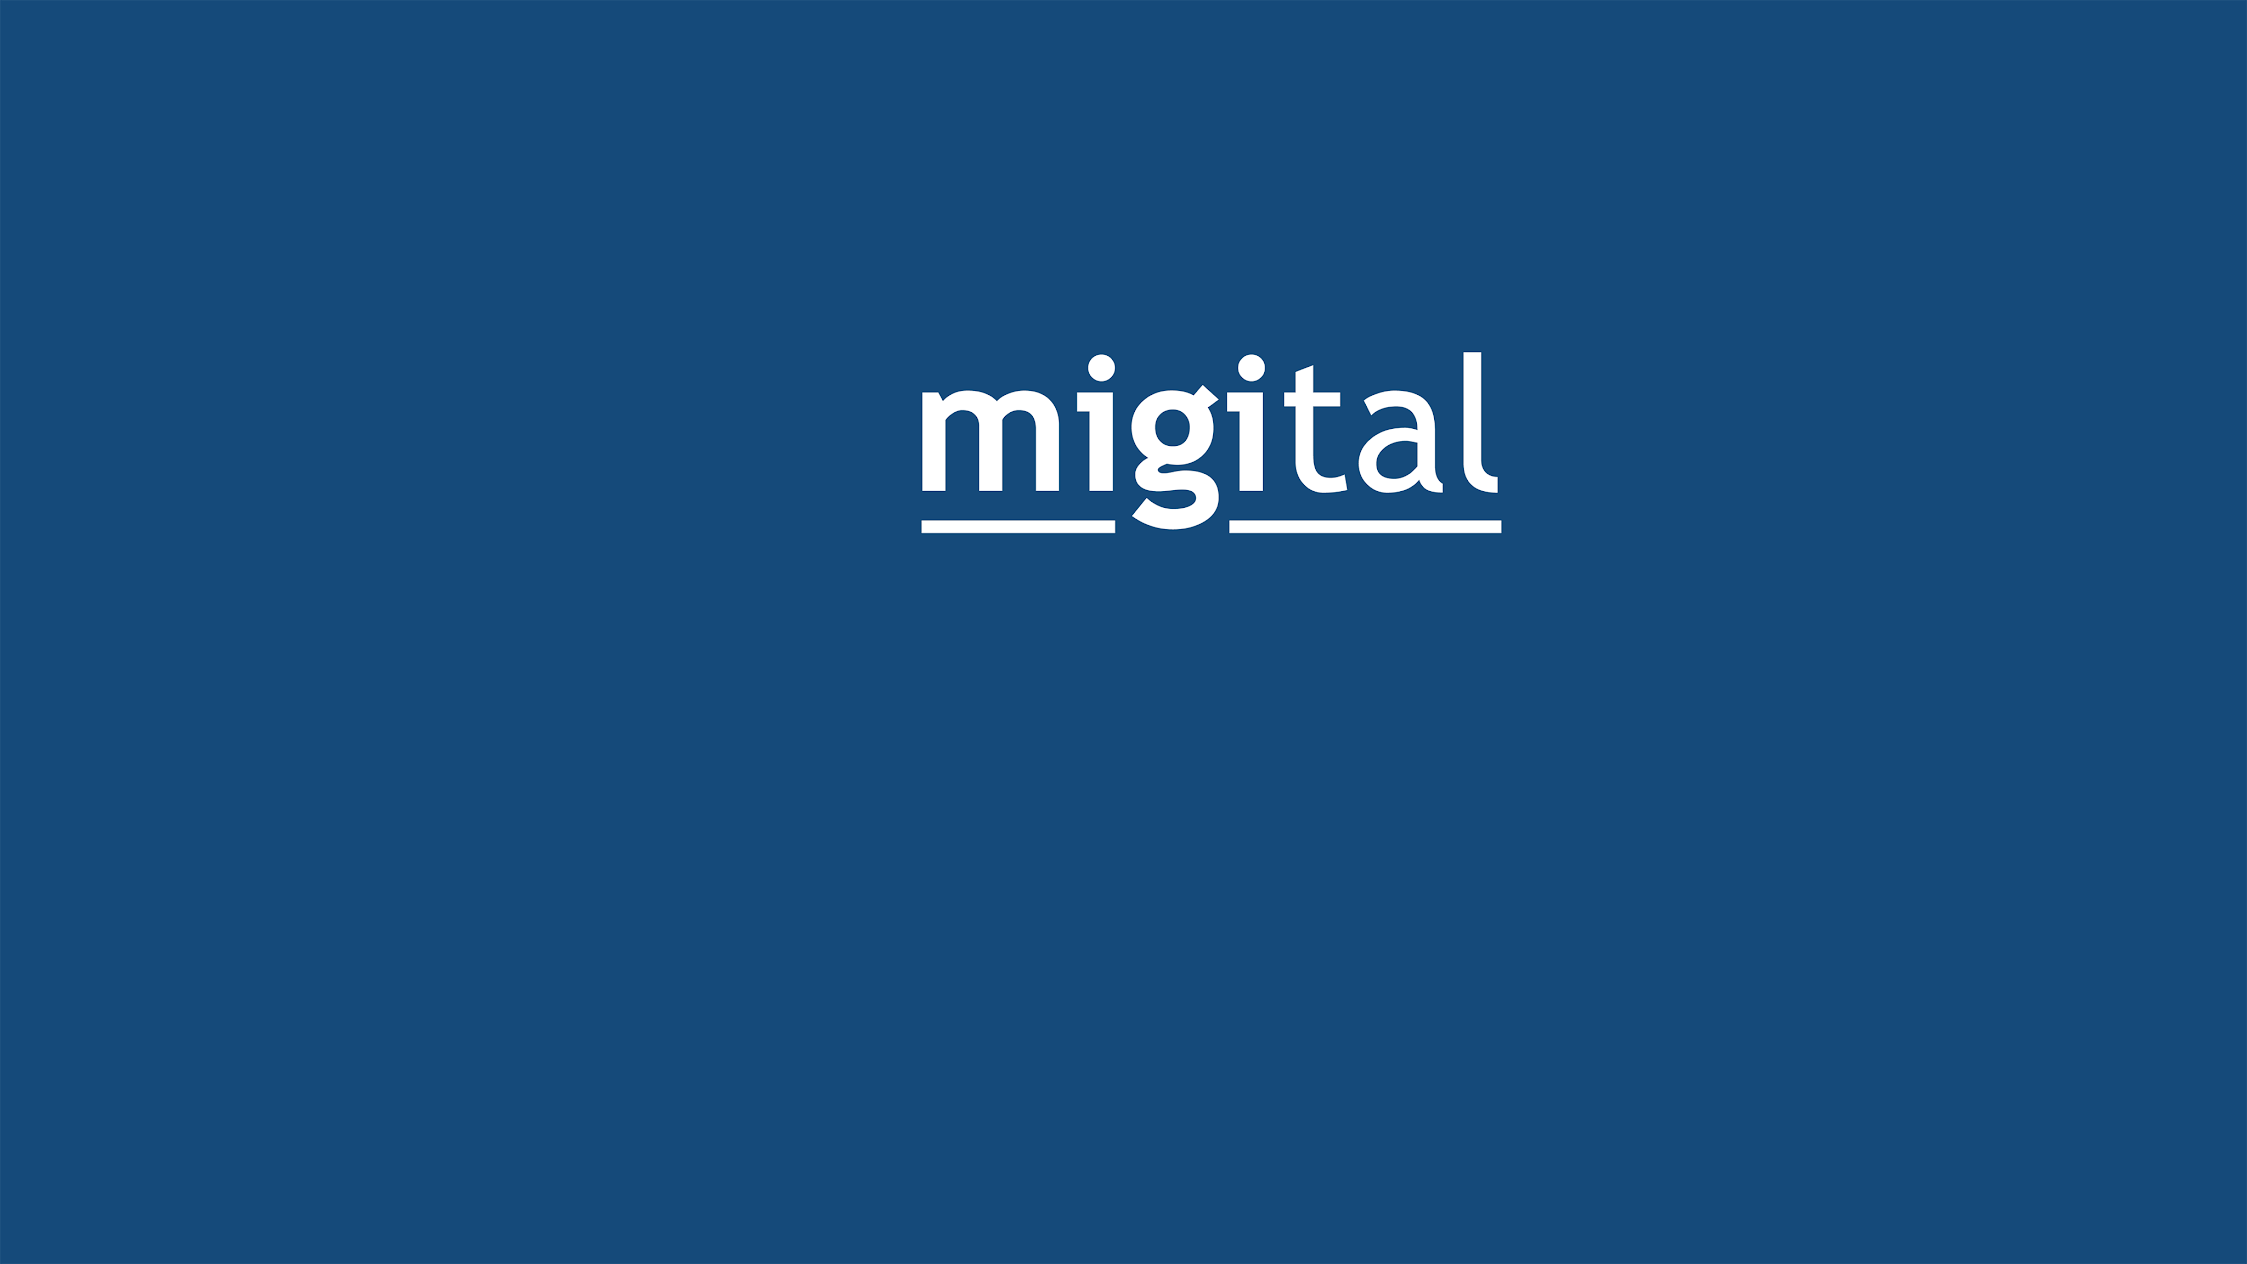 Migital: Best Apps, Games, Videos, Health, Fitness